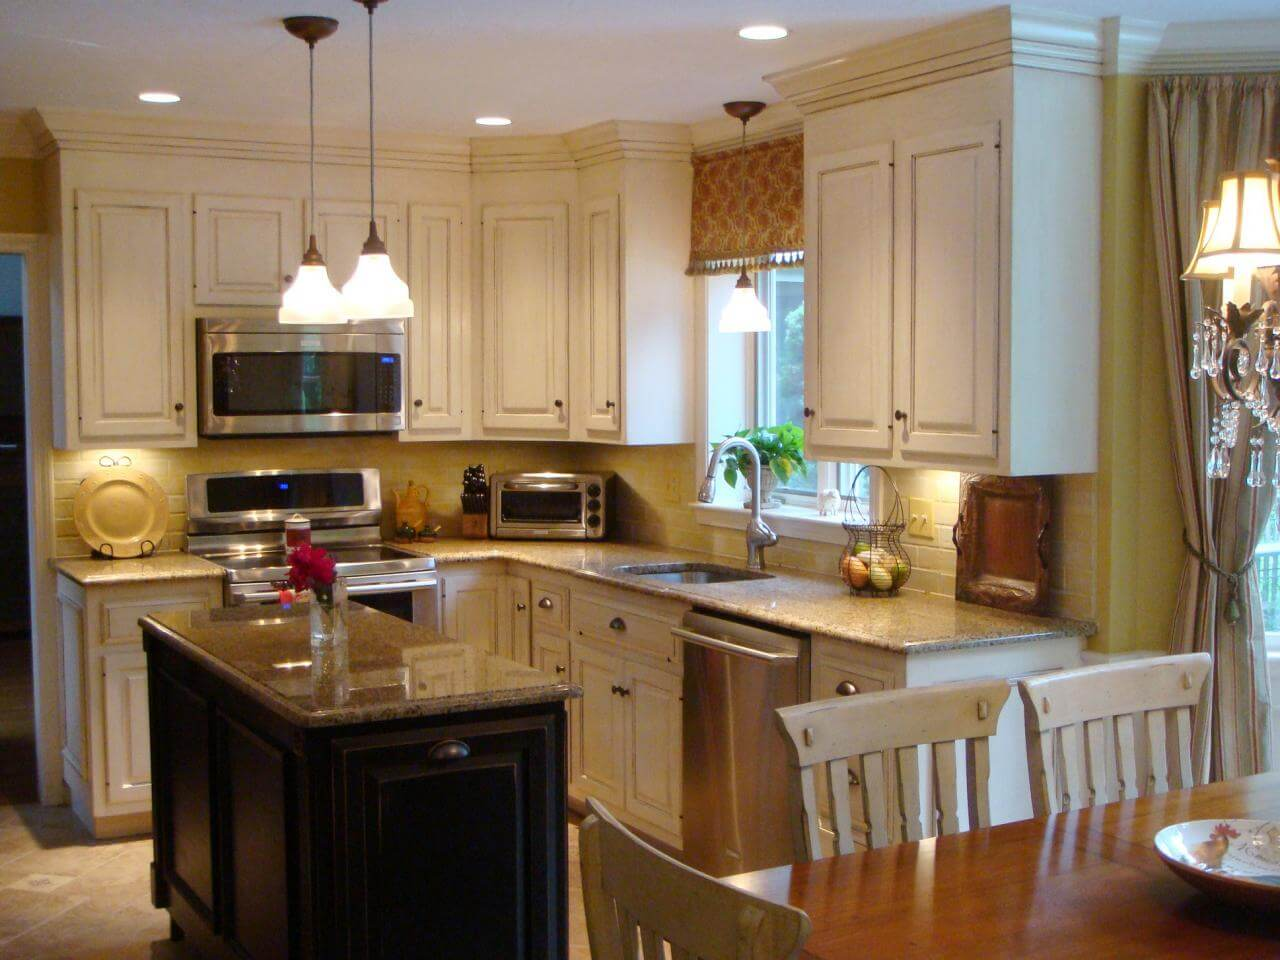 French Country Cabinets in Kitchen